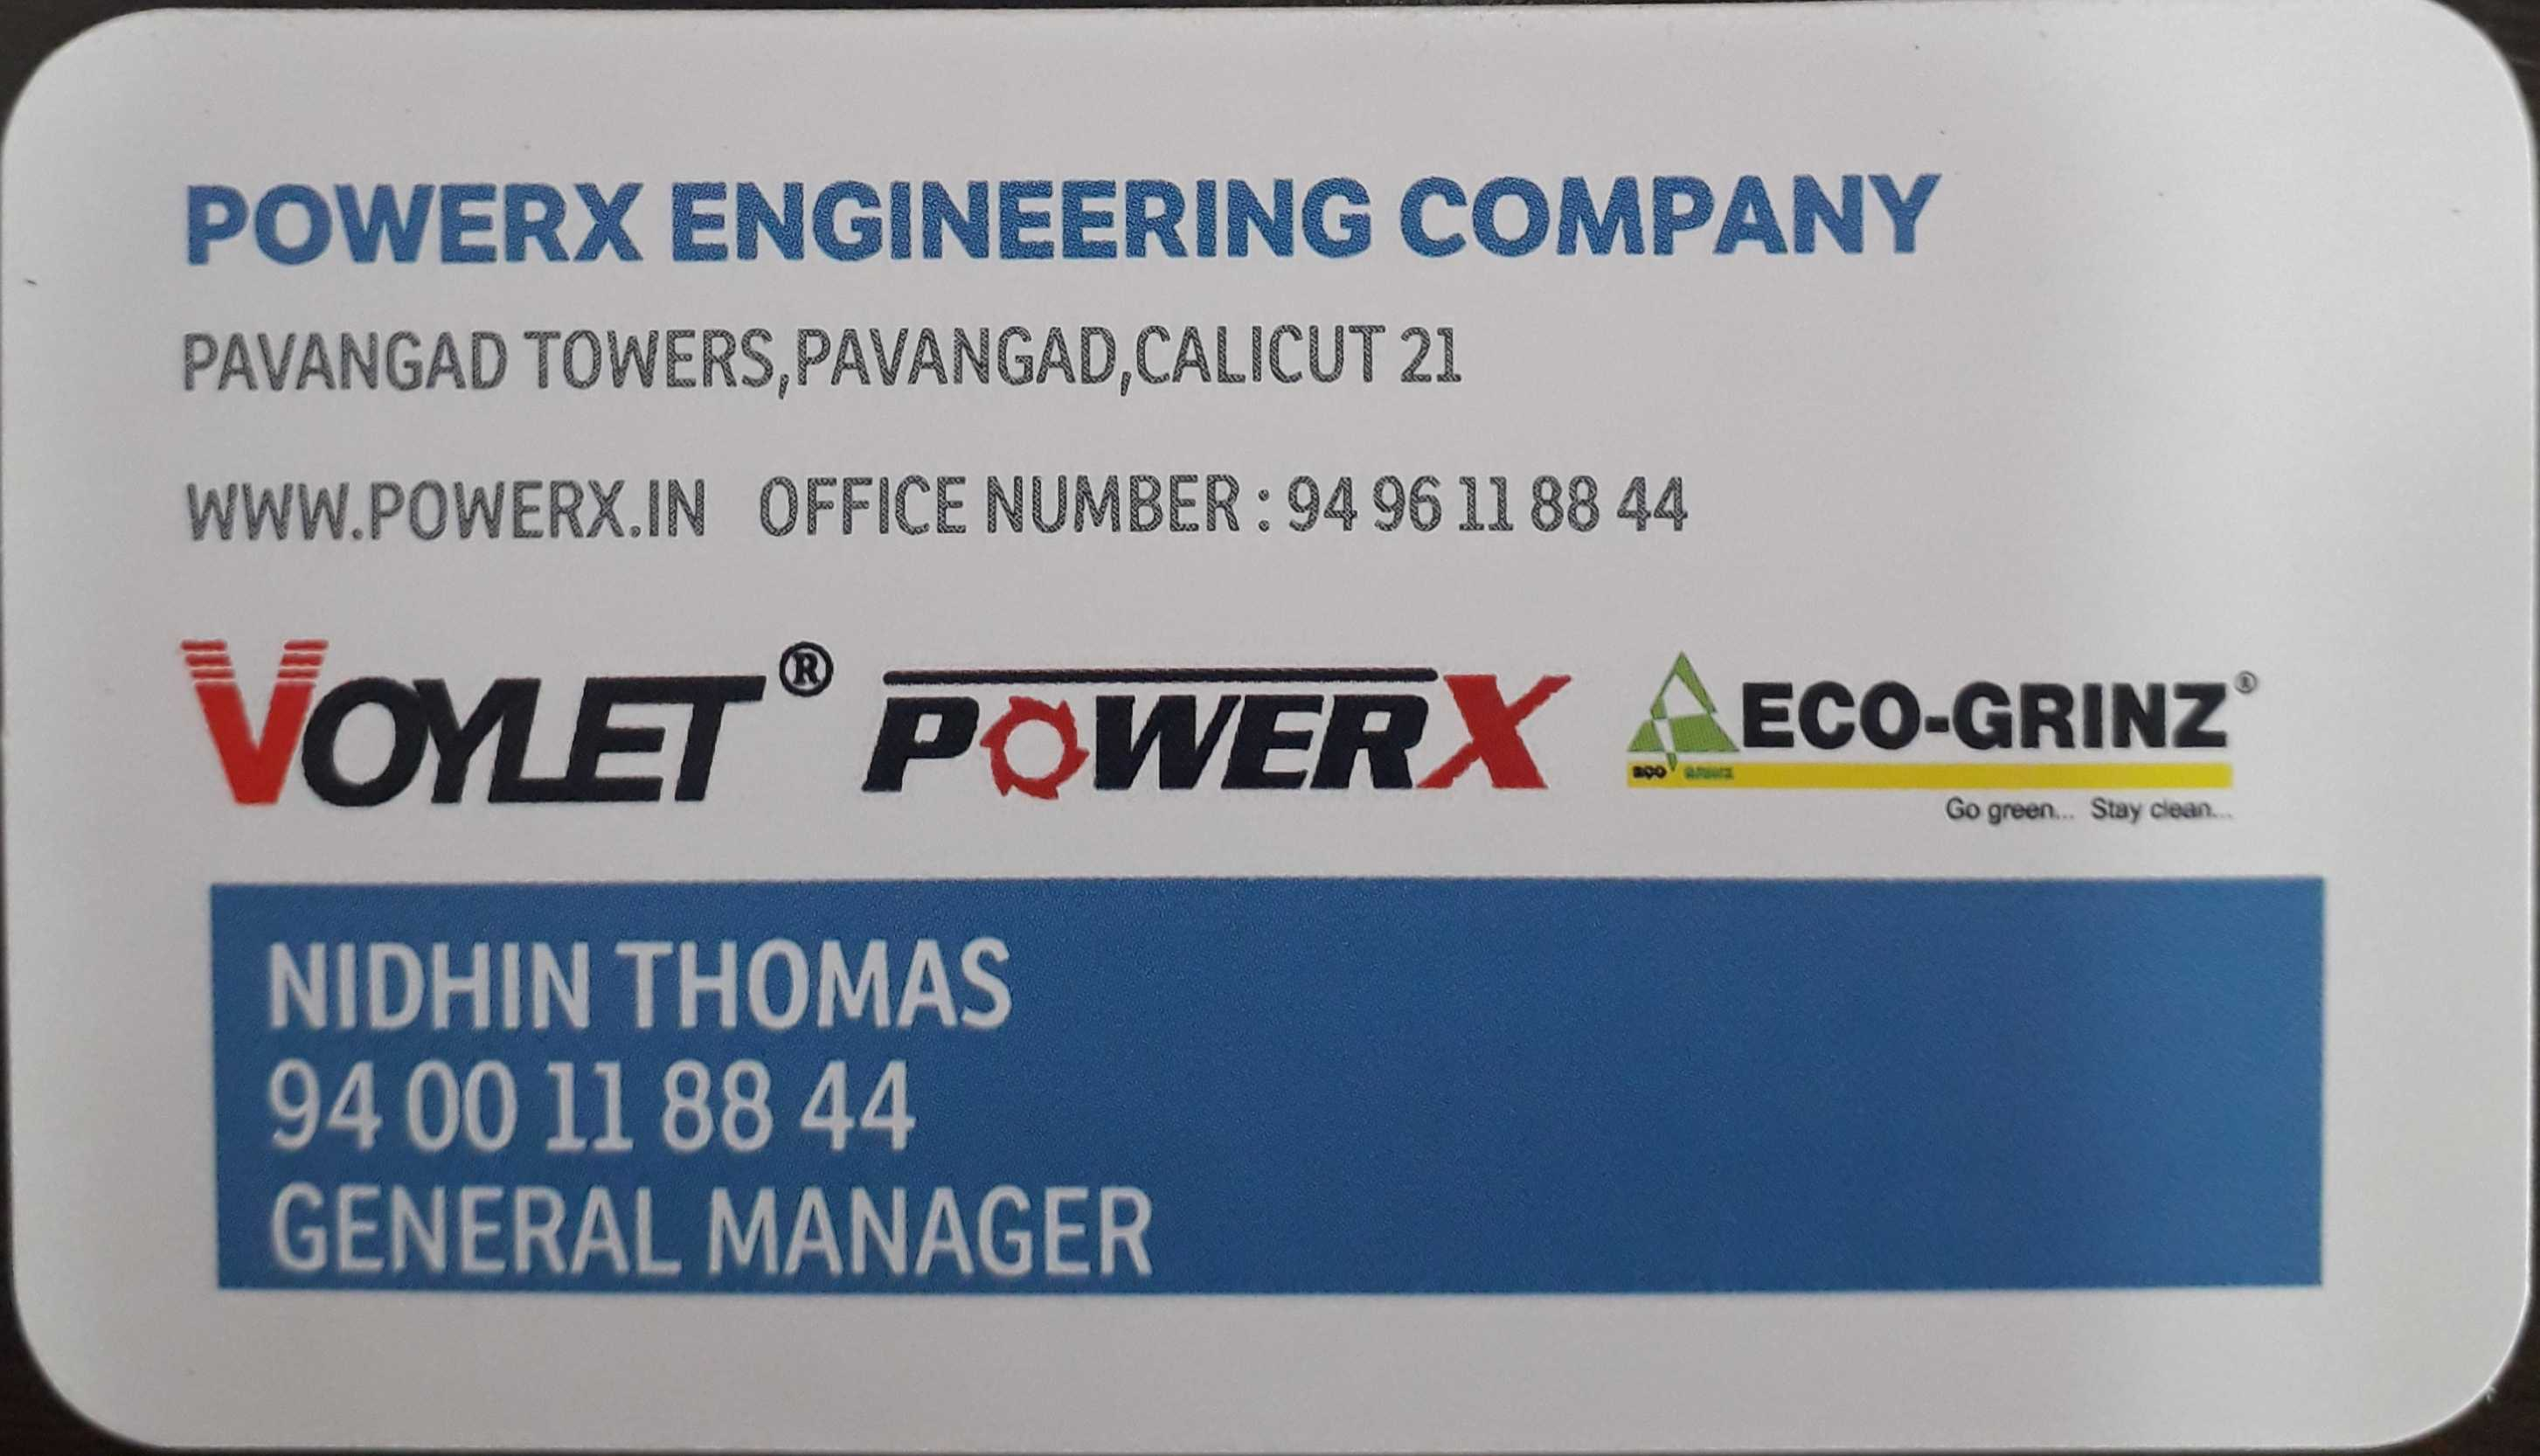 POWER X ENGINEERING COMPANY, TOOLS,  service in Pavangad, Kozhikode